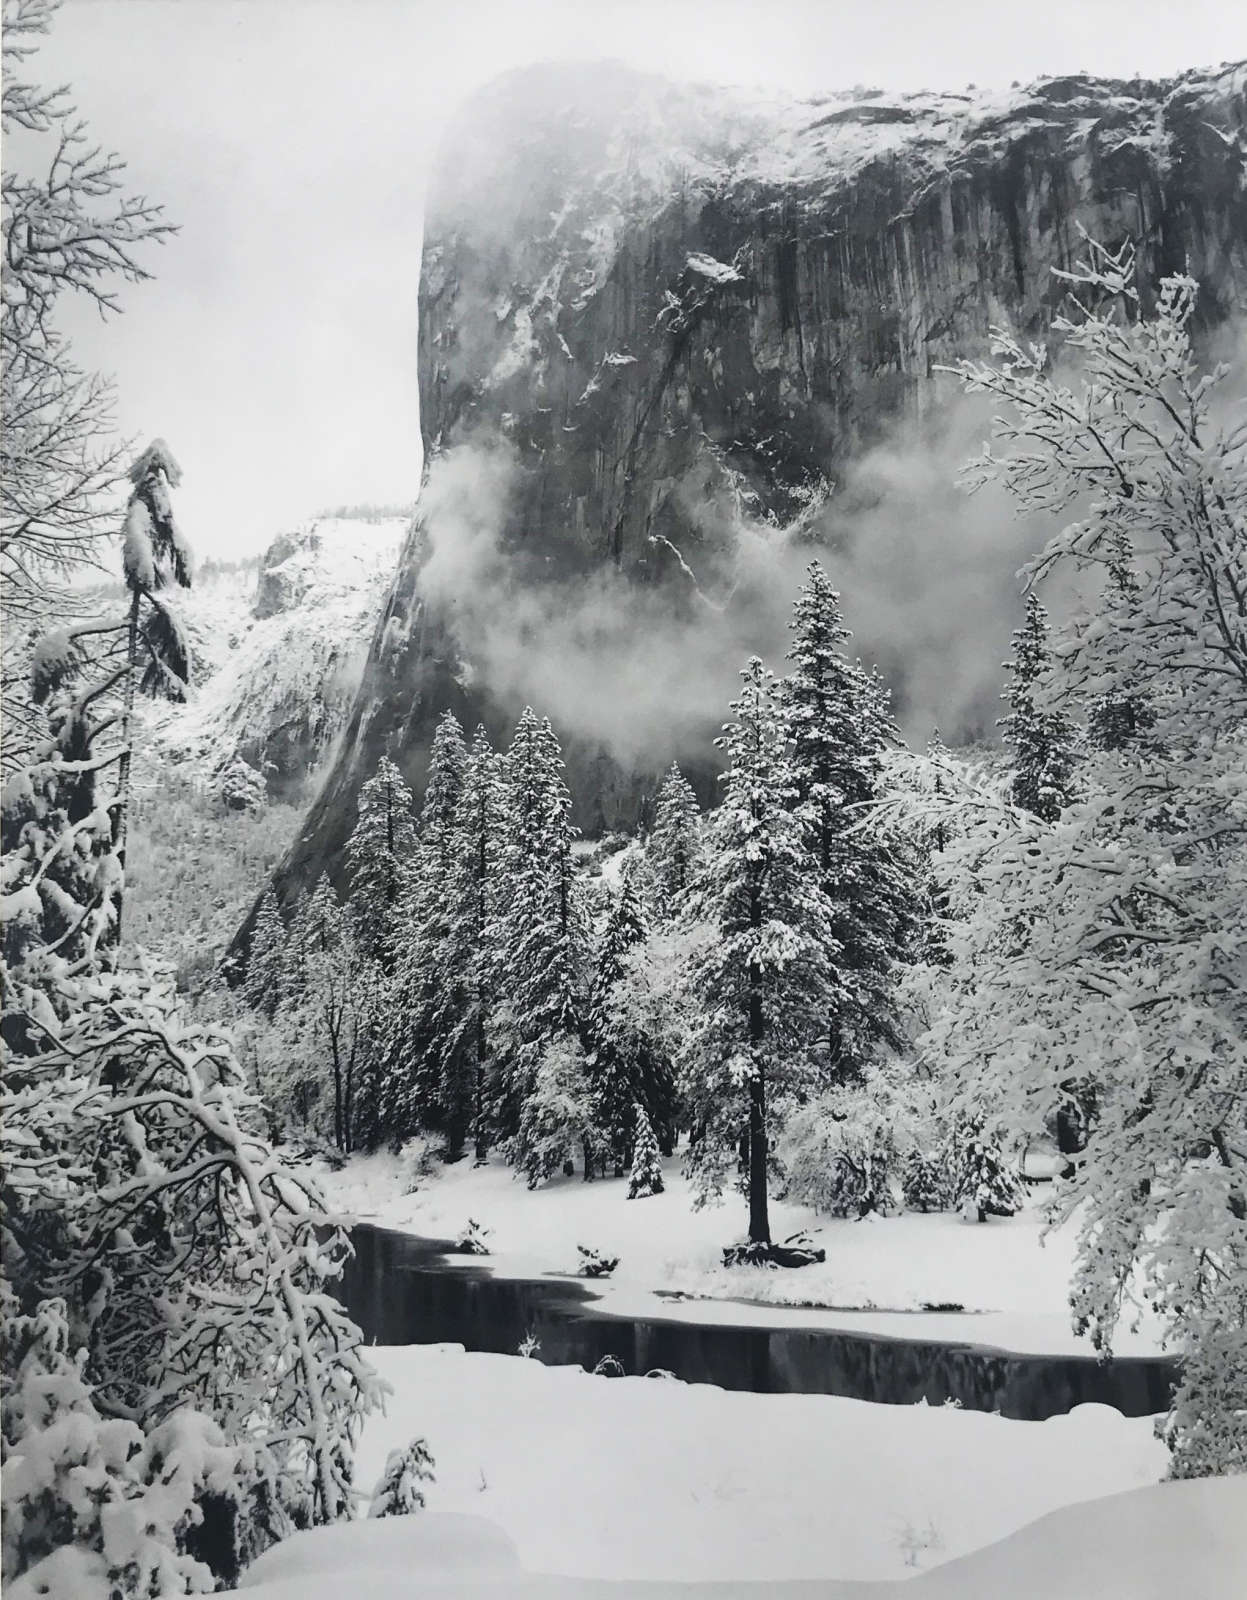 Ansel Adams, El Capitan, Yosemite Valley, CA, Winter, c. 1950